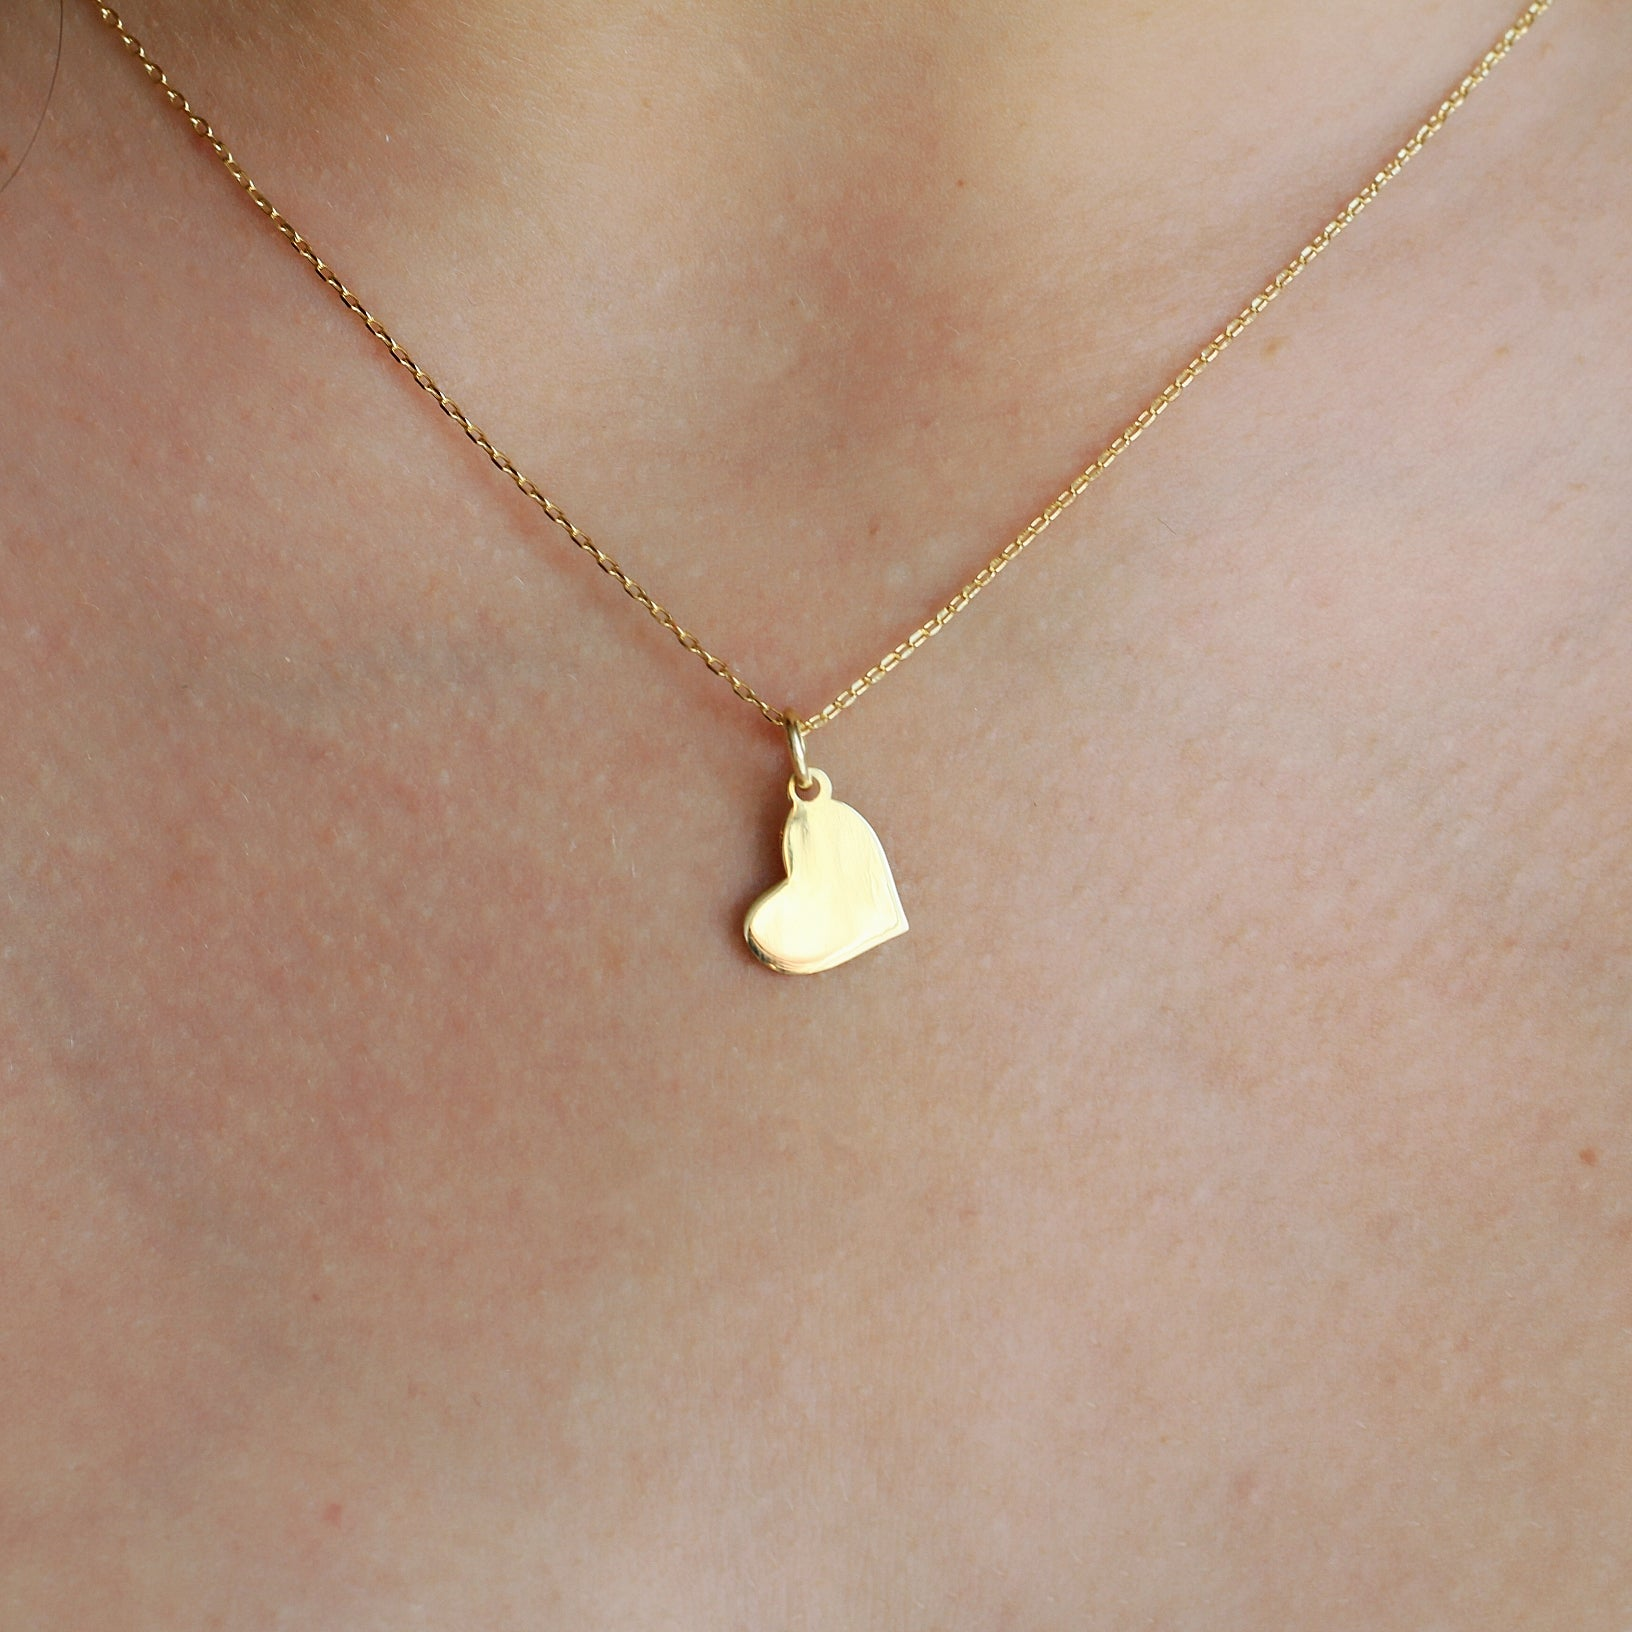 SWEETHEART CHARM NECKLACE